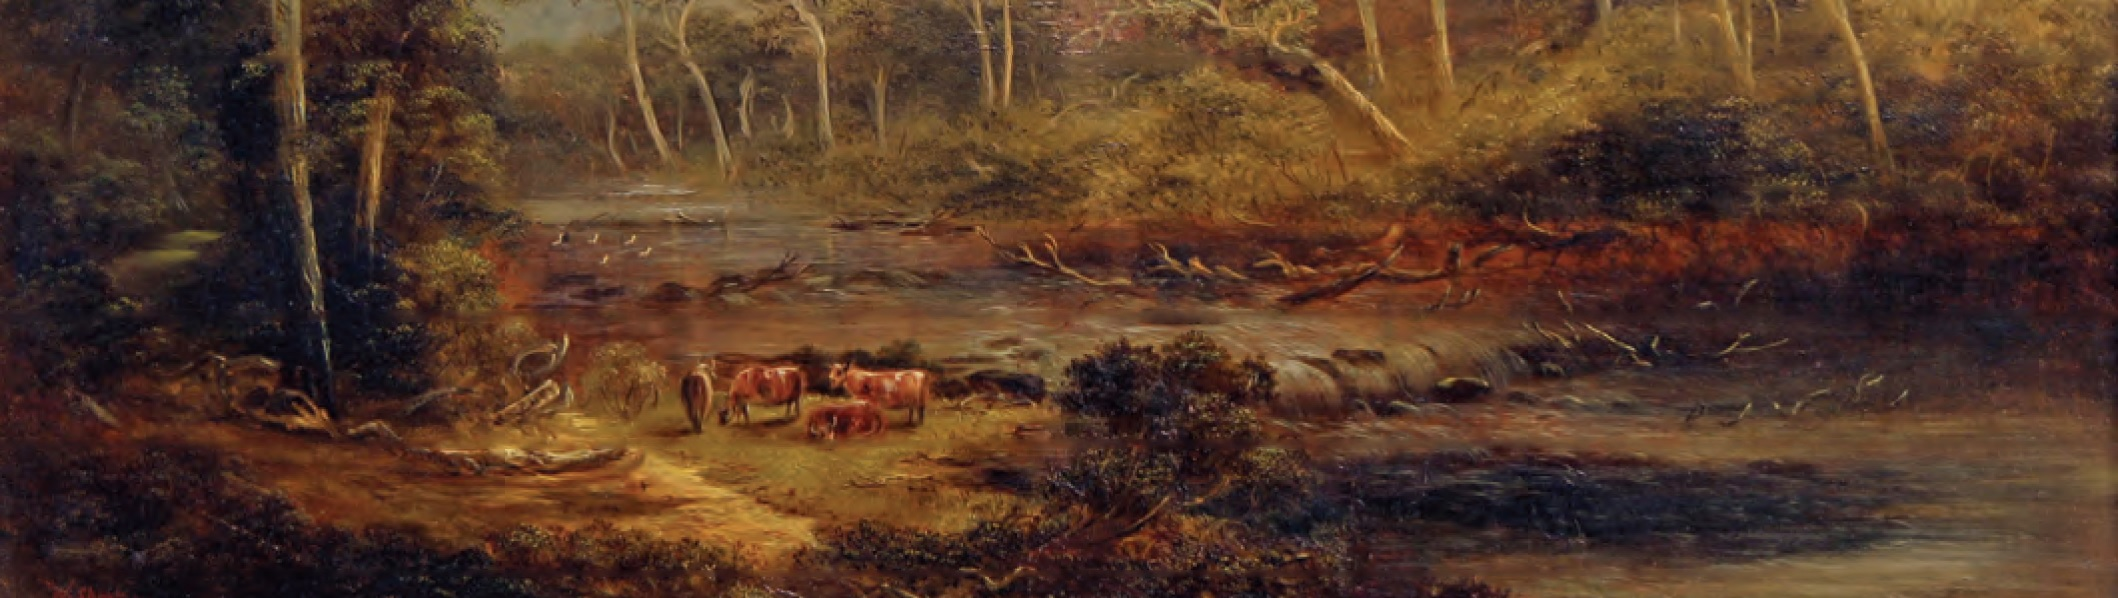 'Paintings of Early Melbourne' from the Roy Morgan Research Centre Collection on display at Old Treasury Building on a tour only.